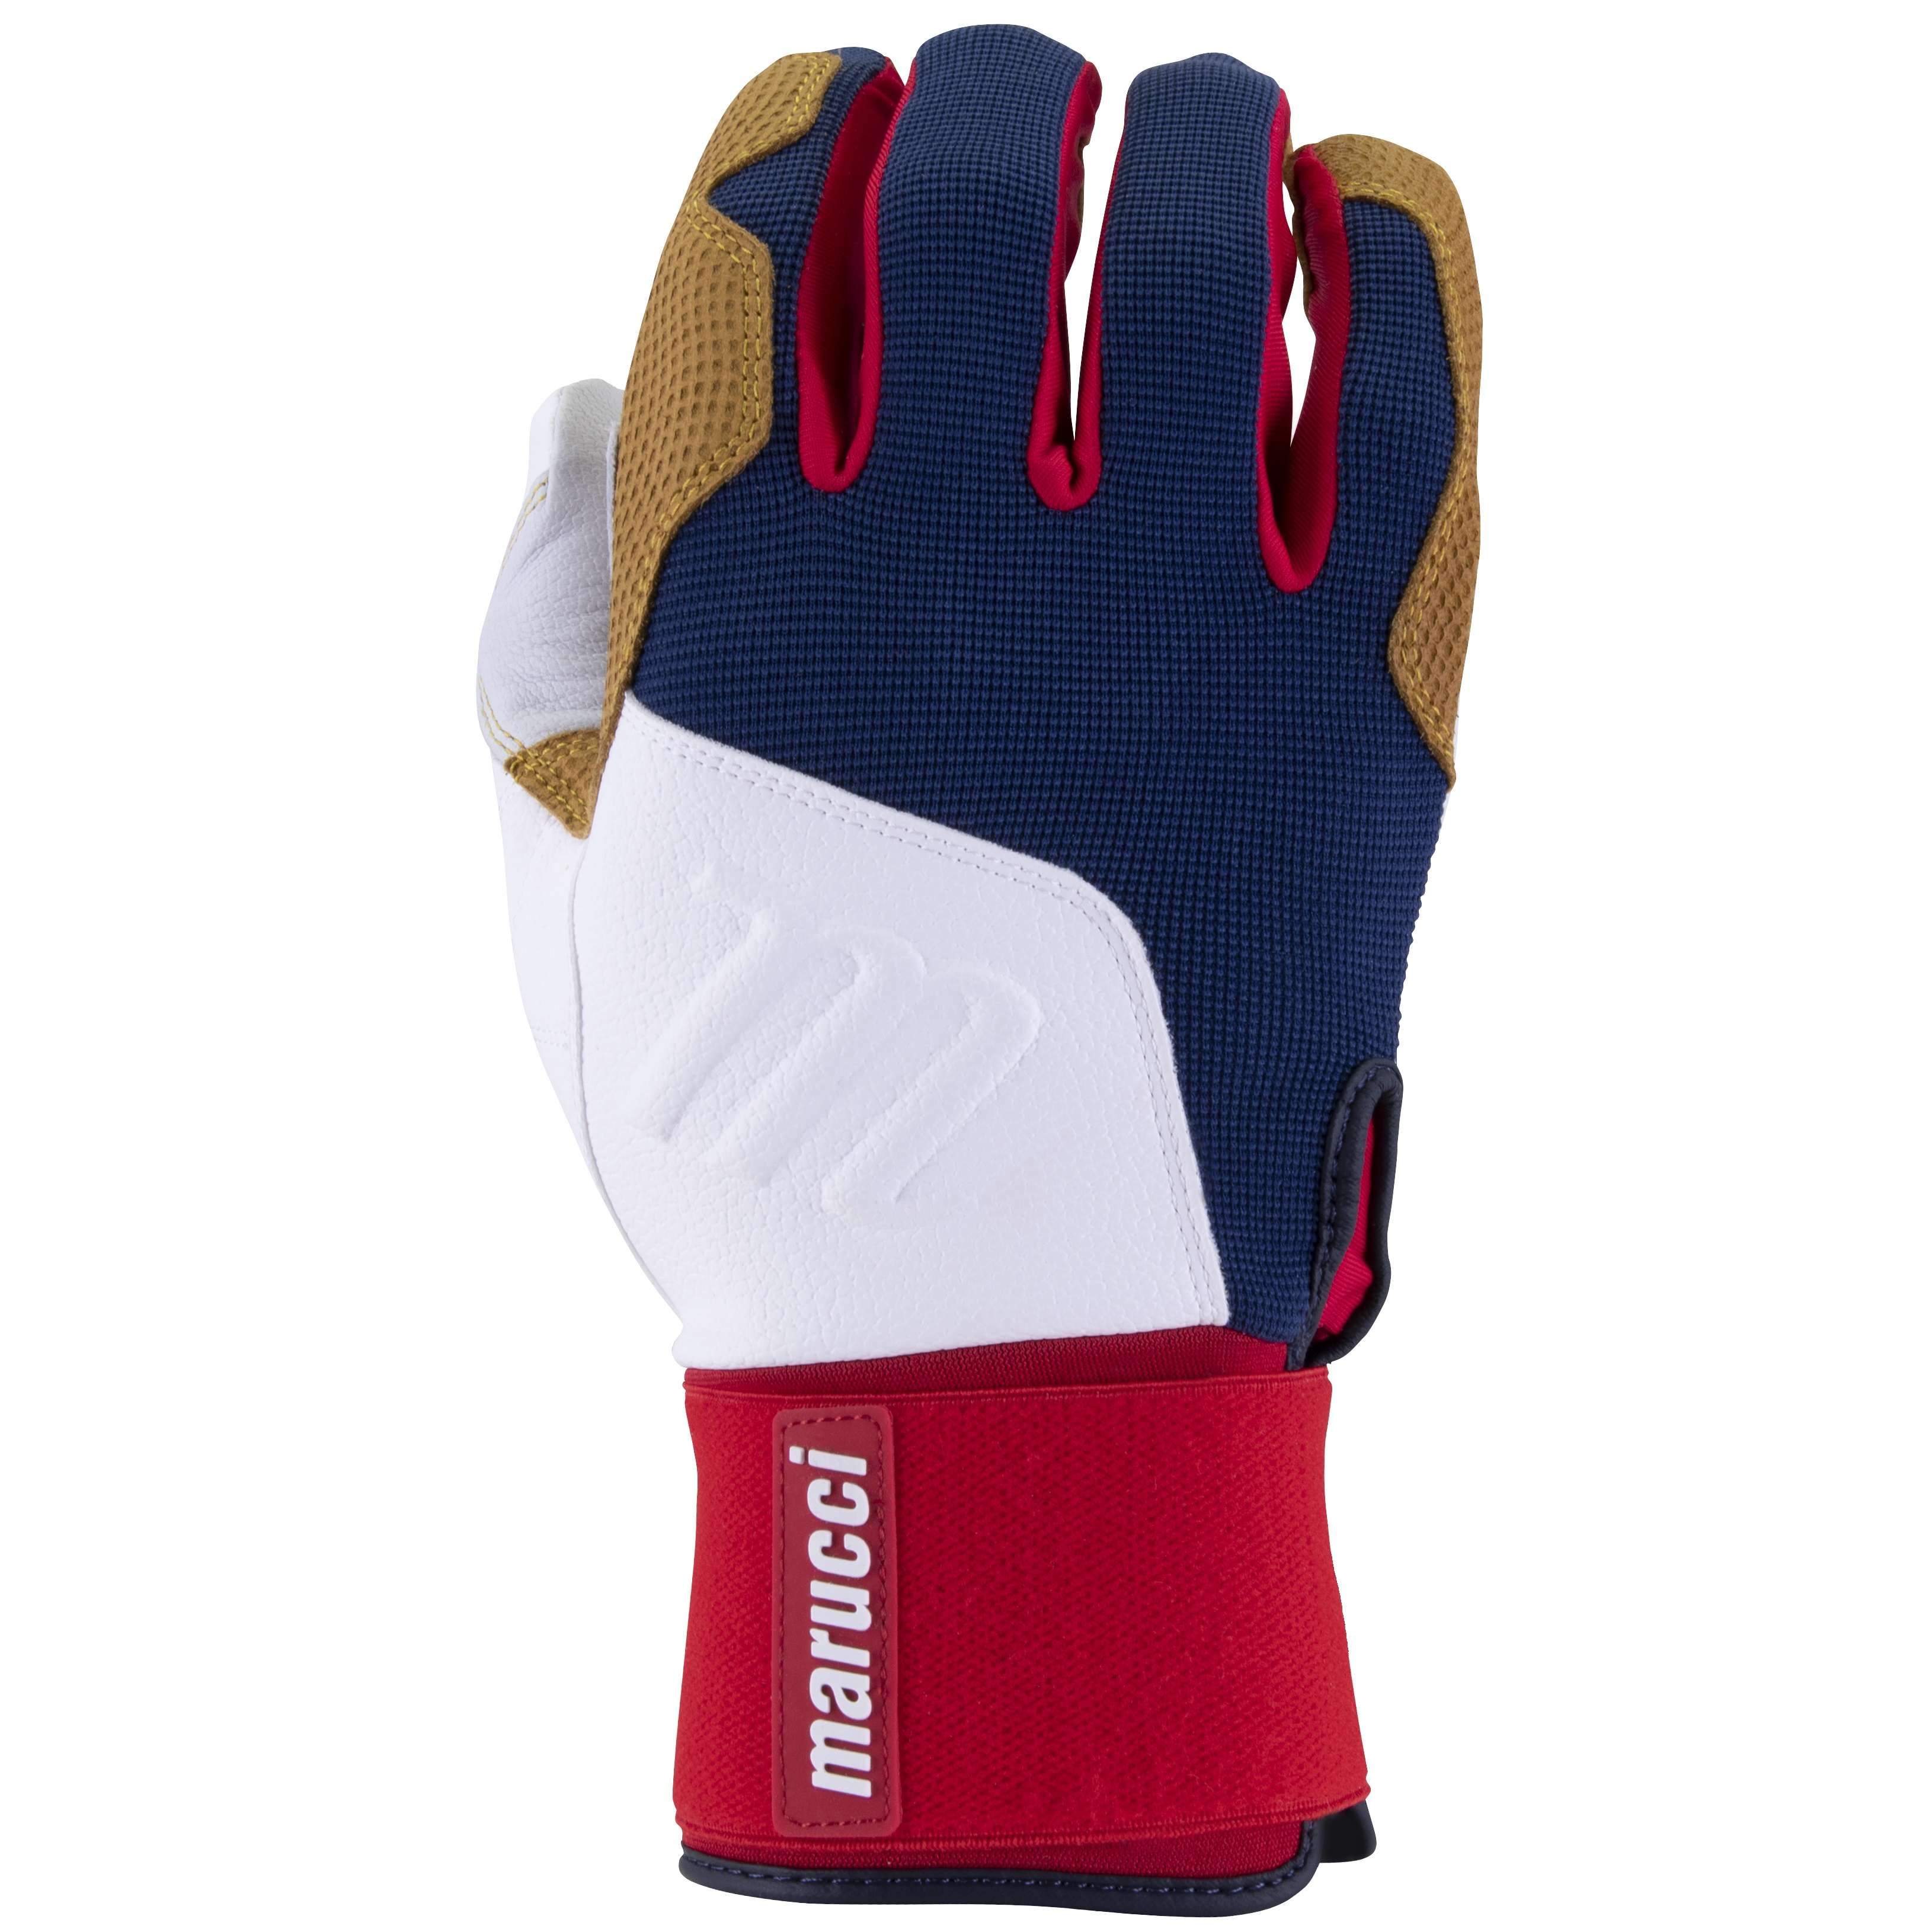 marucci-blacksmith-full-wrap-batting-gloves-usa-adult-small MBGBKSMFW-USA-AS Marucci 840058749205 <h1 class=productView-title-lower>BLACKSMITH BATTING GLOVES</h1> Your game is a craft built through